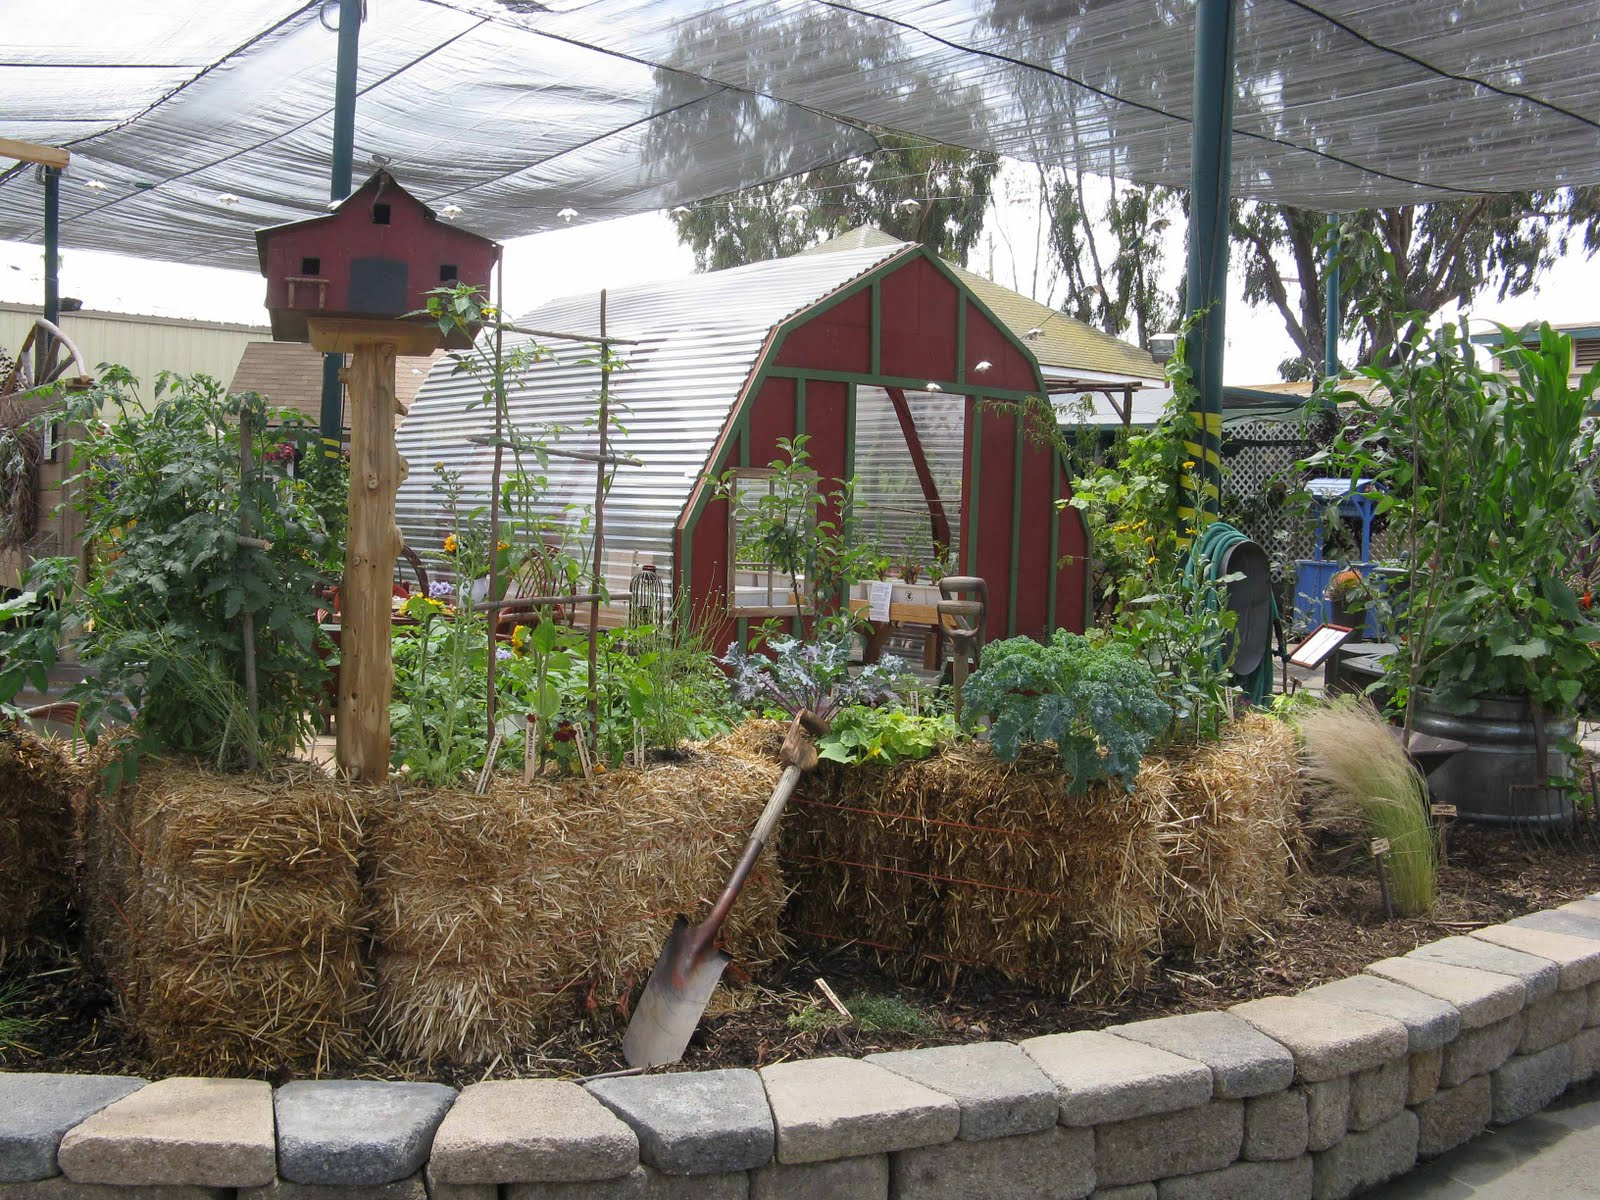 The Green Truth Hay Bale Gardening